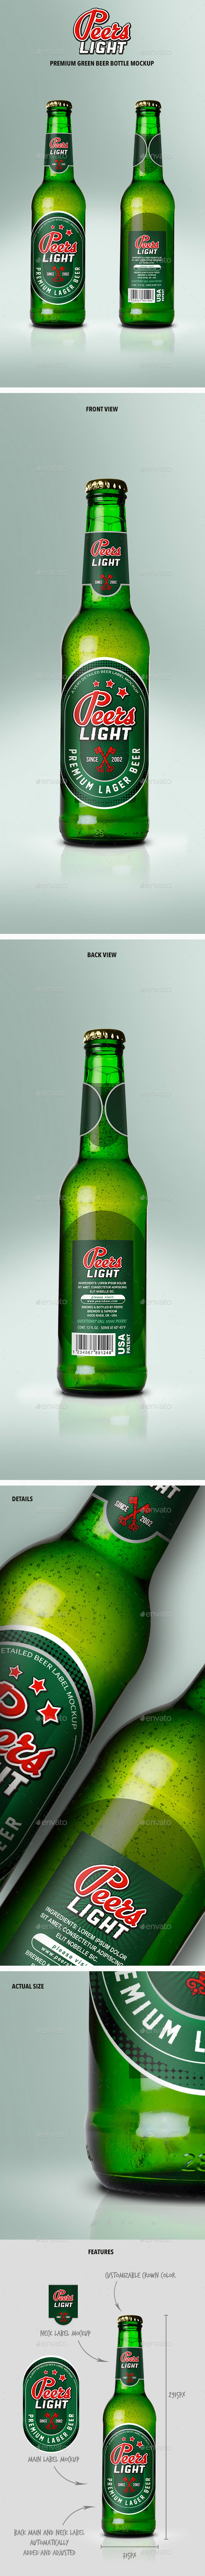 Premium Green Beer Bottle Mockup